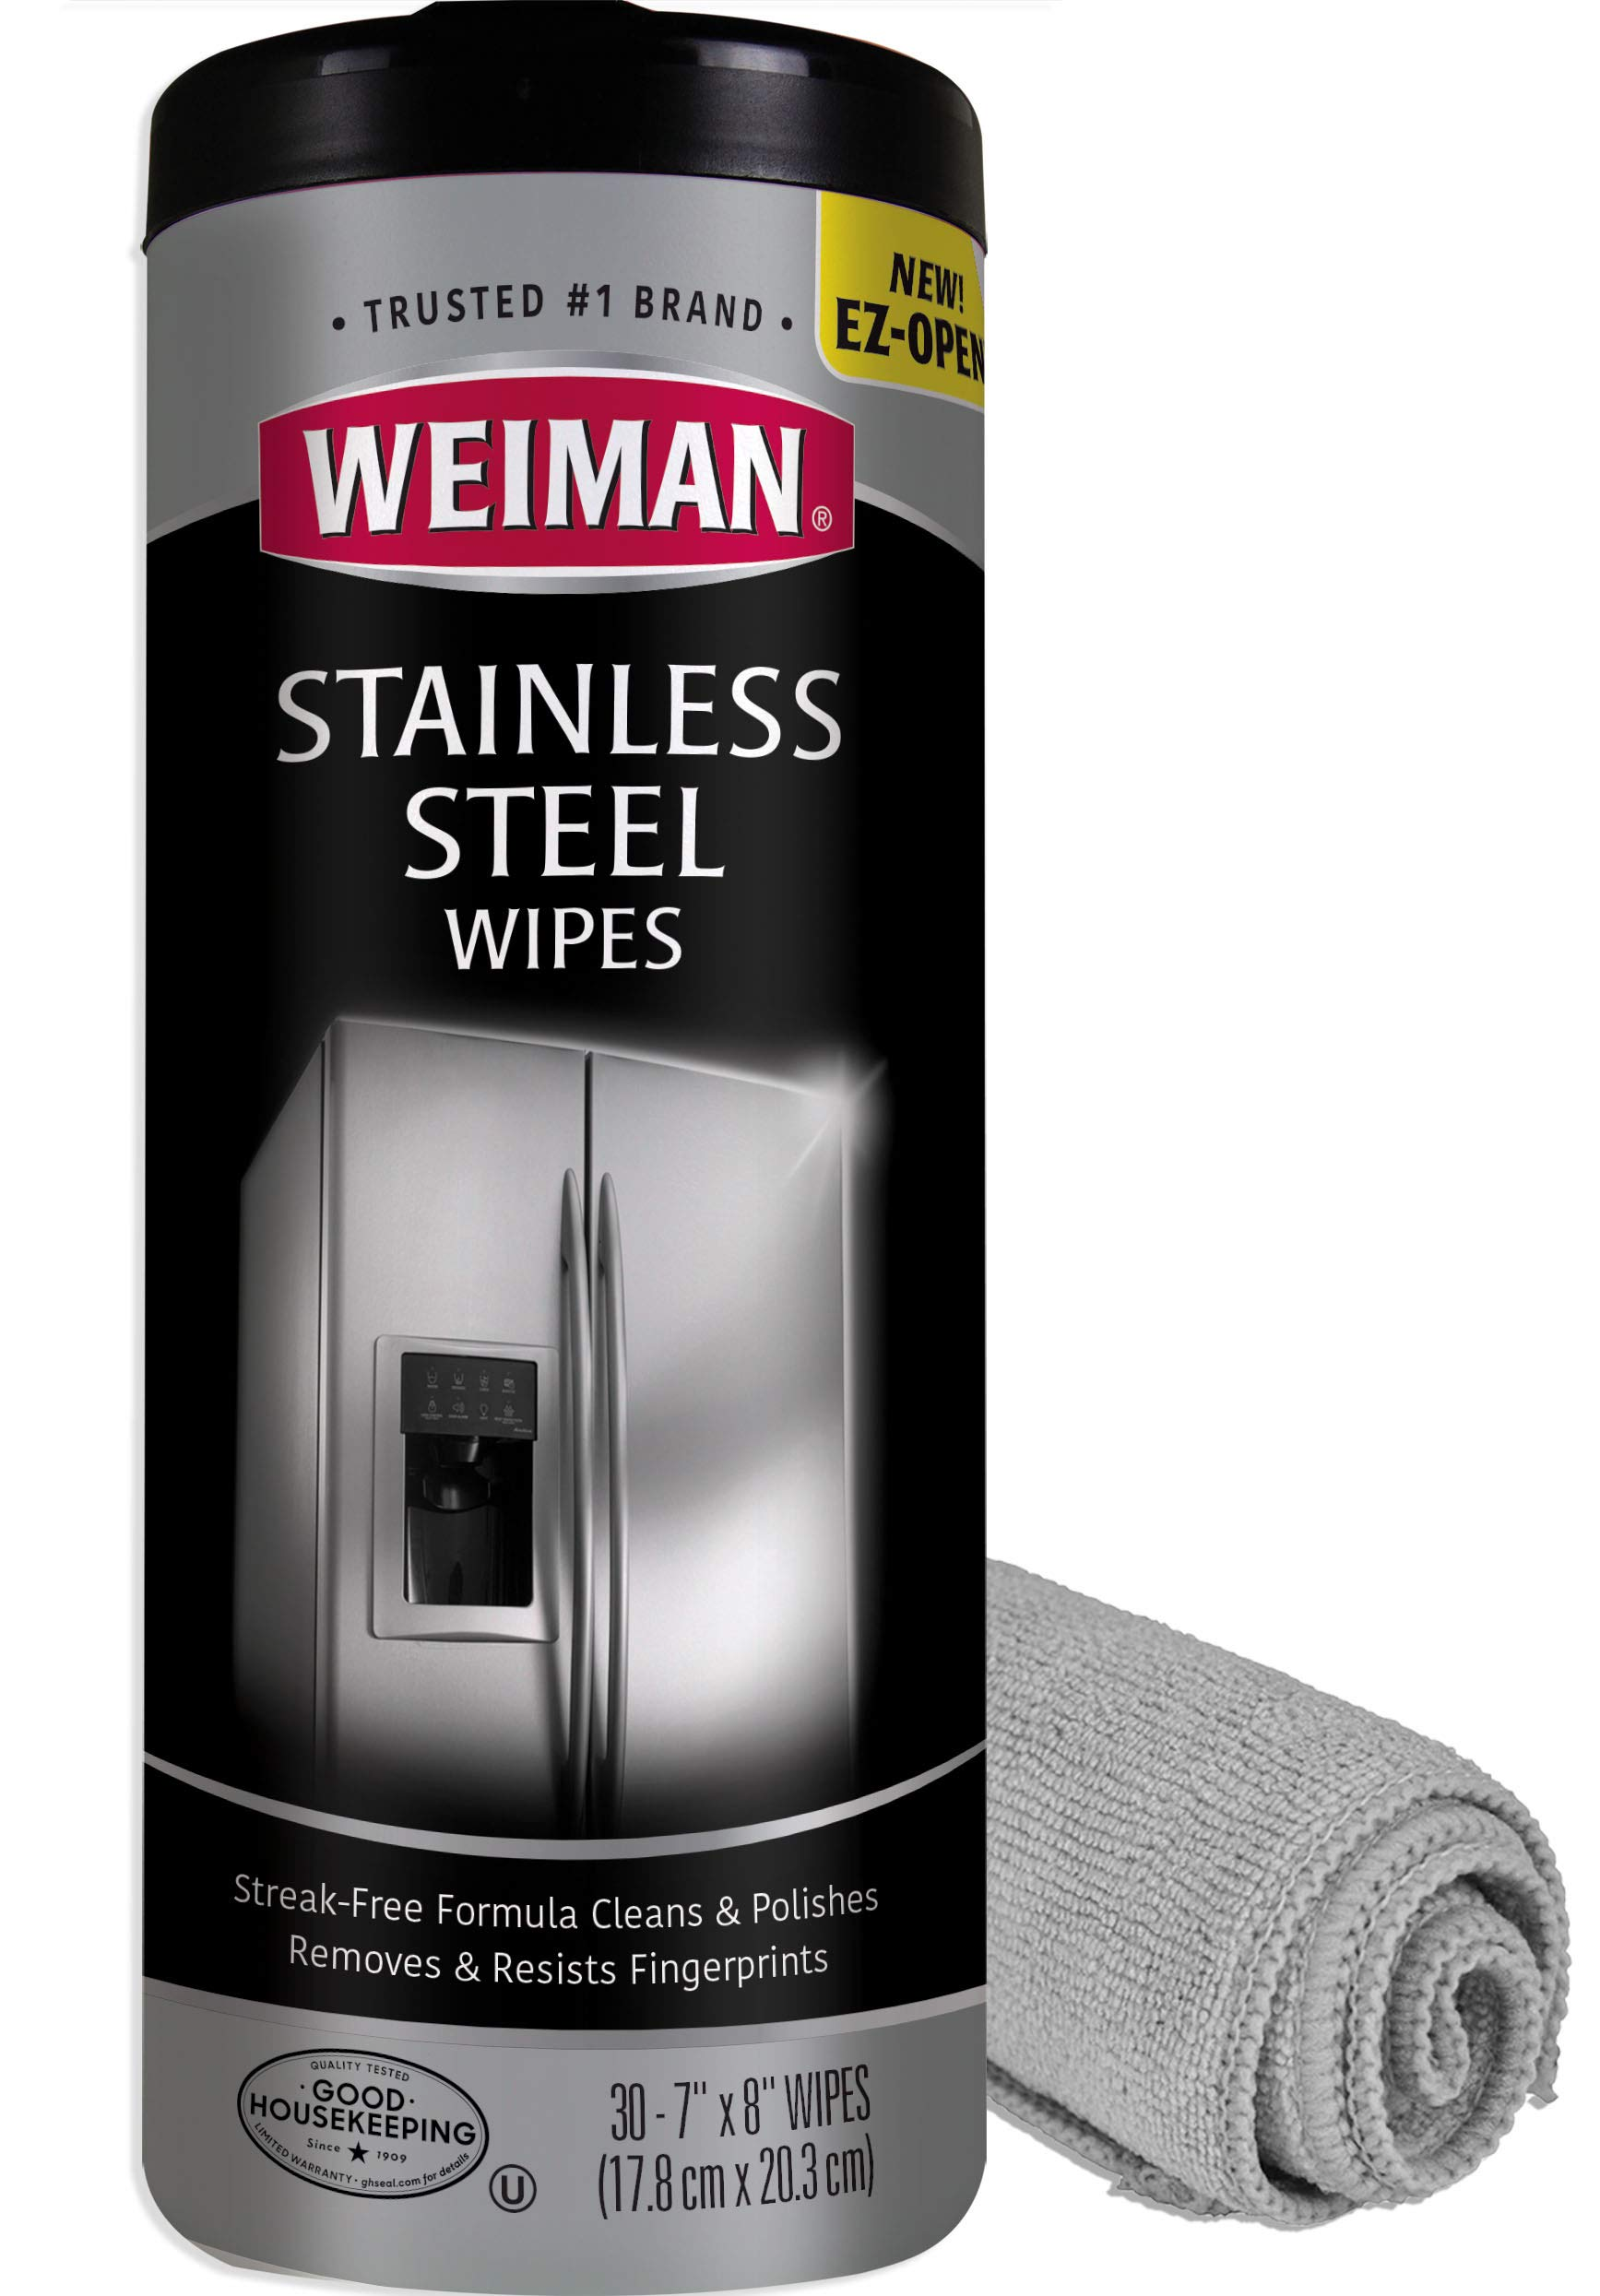 Weiman Stainless Steel Cleaning Wipes (Large Microfiber Cloth) Non-Toxic Removes Fingerprints Residue Water Marks and Grease from Appliances - Works Great on Refrigerators Dishwashers Ovens Grills by Weiman